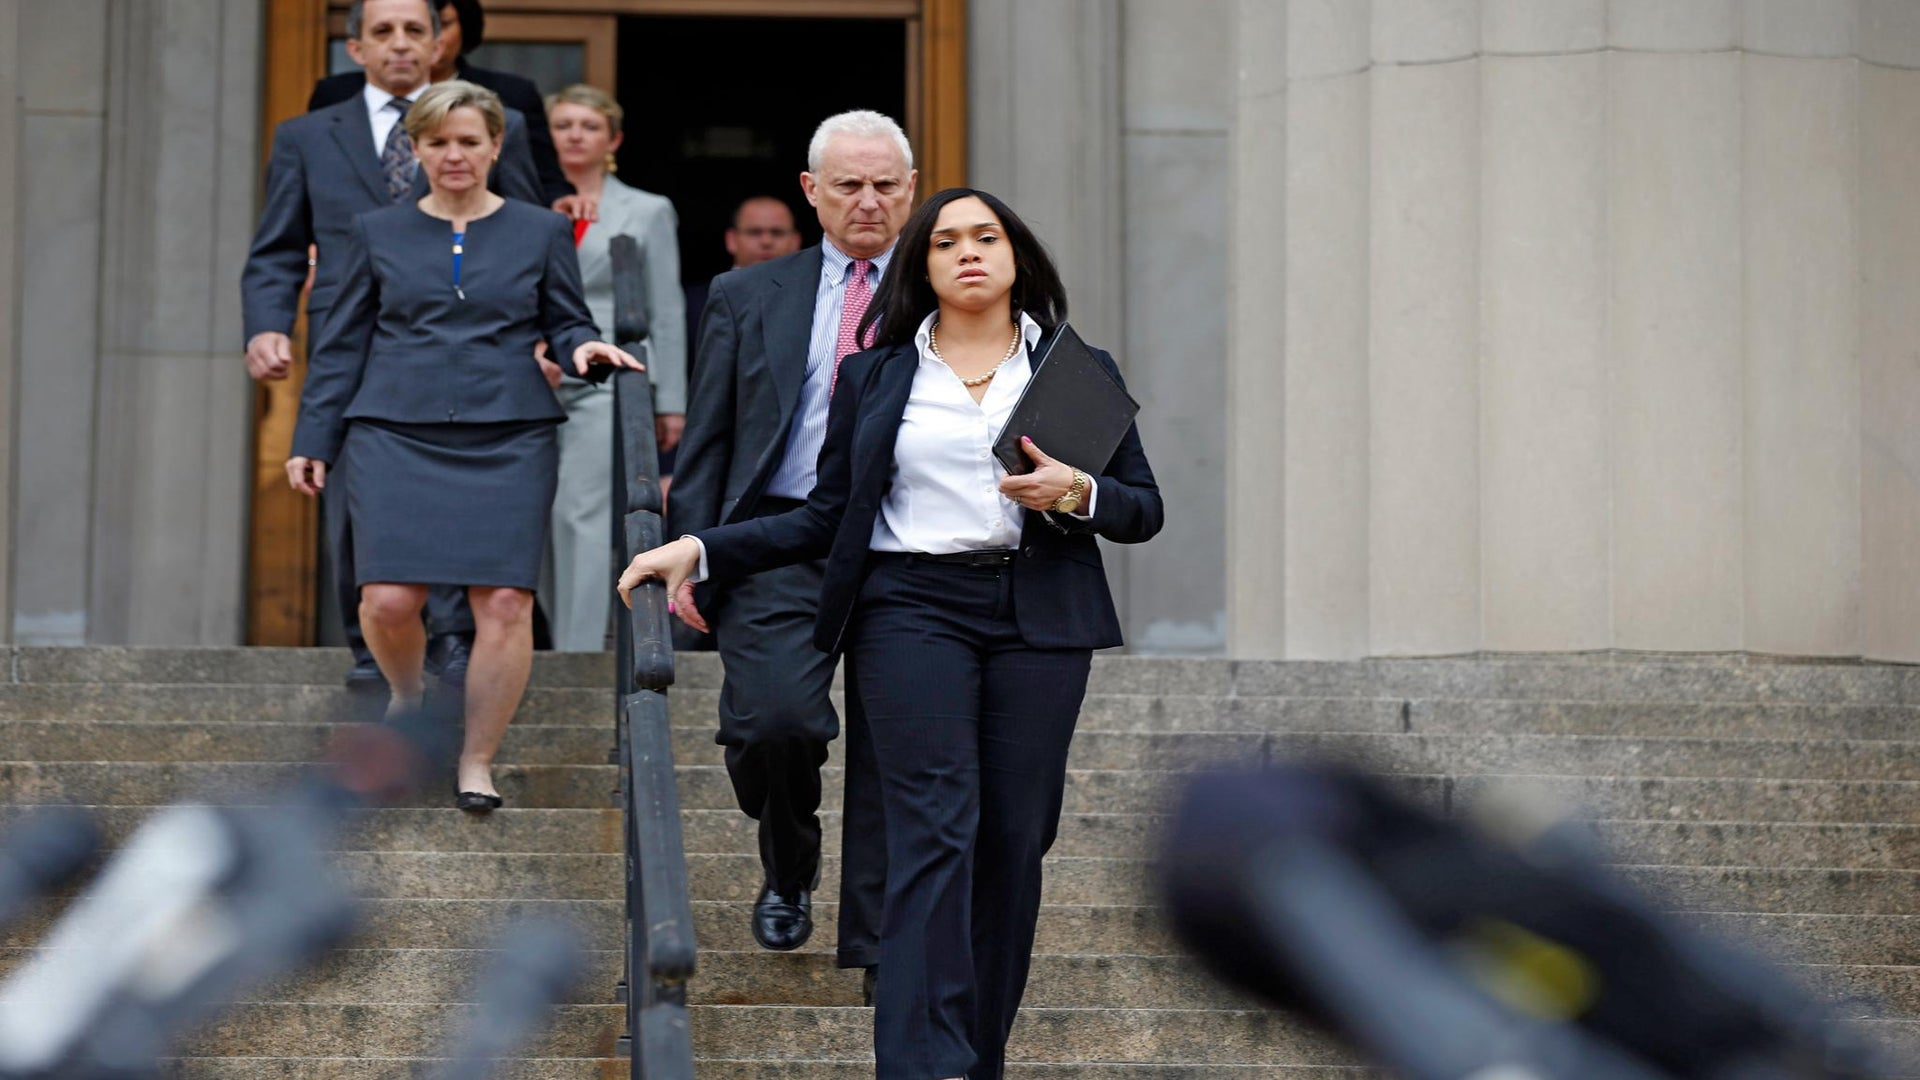 State Attorney Under Fire After Failing to Convict Officers in Freddie Gray Case